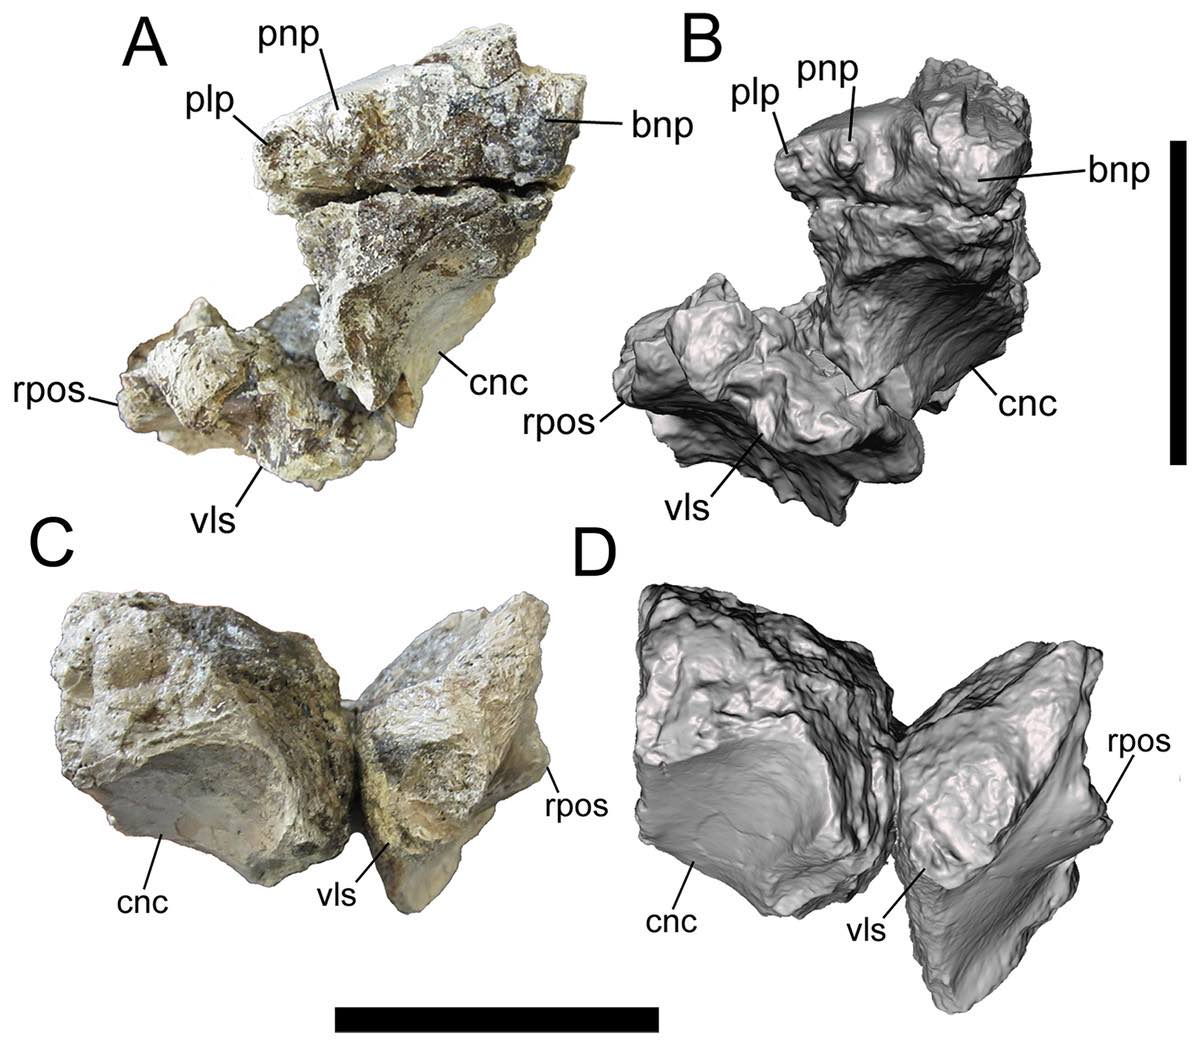 A new tyrannosaurid from the Upper Cretaceous Menefee Formation